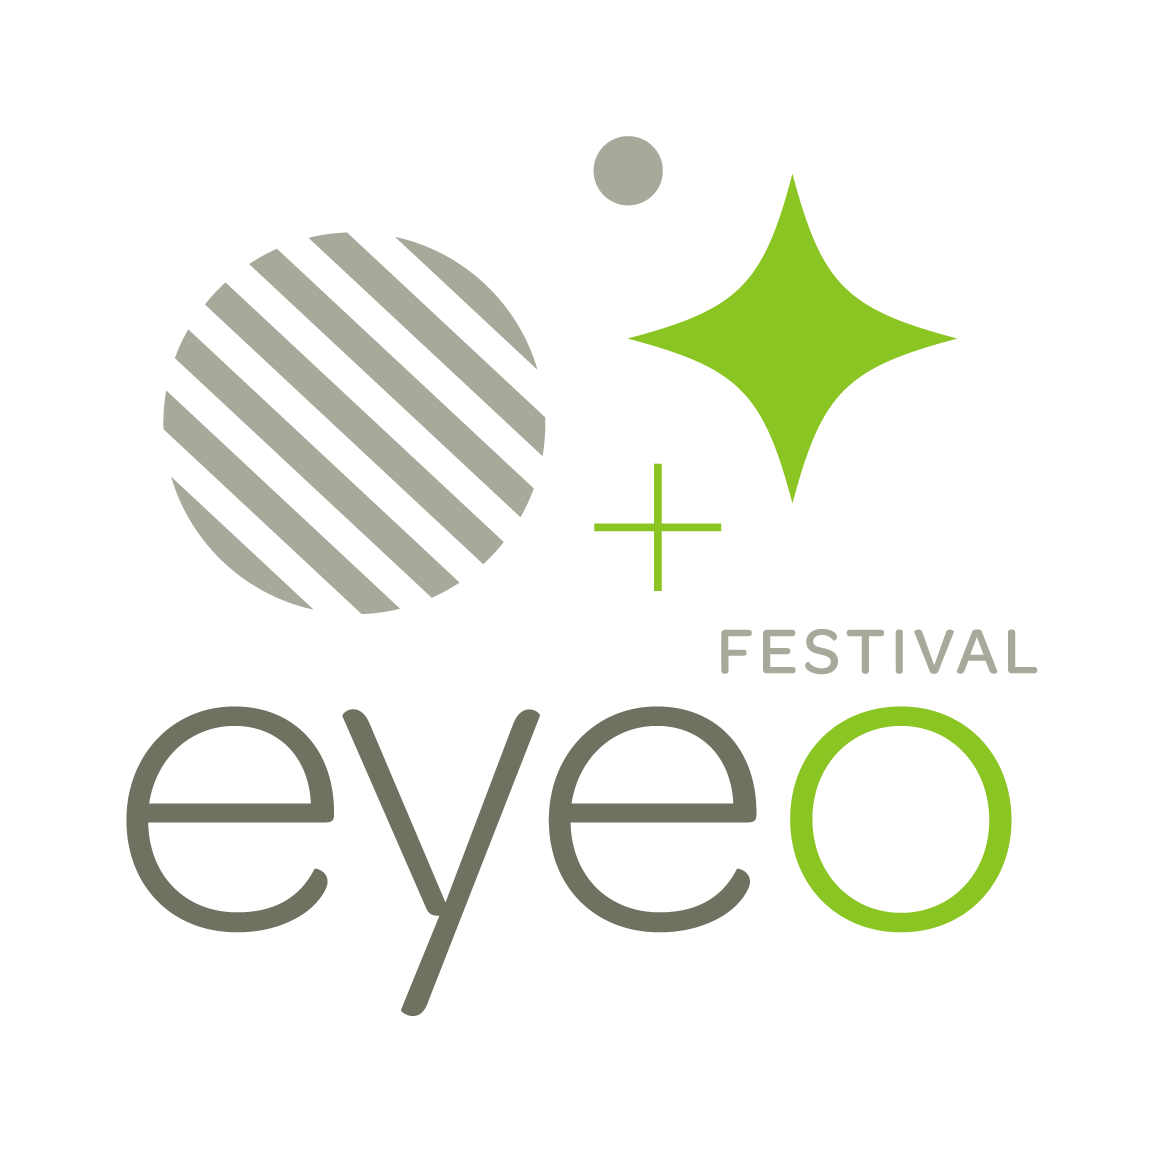 Eyeo Festival '15: Music Visualization w/ p5.js